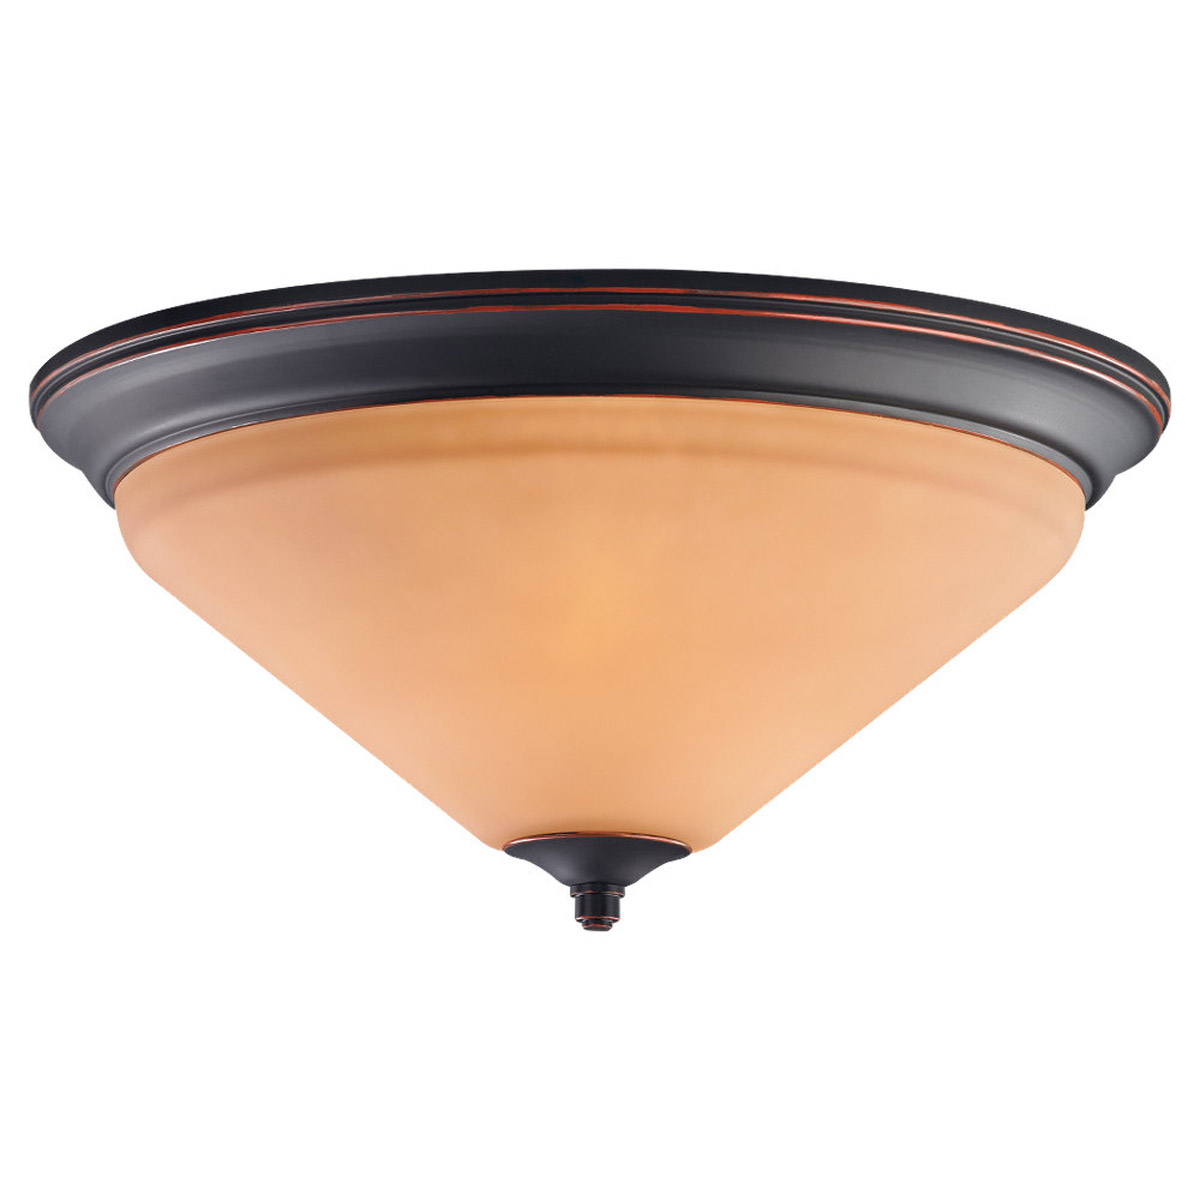 Sea Gull Lighting Belair 3 Light Flush Mount in Vintage Brown 75791-862 photo